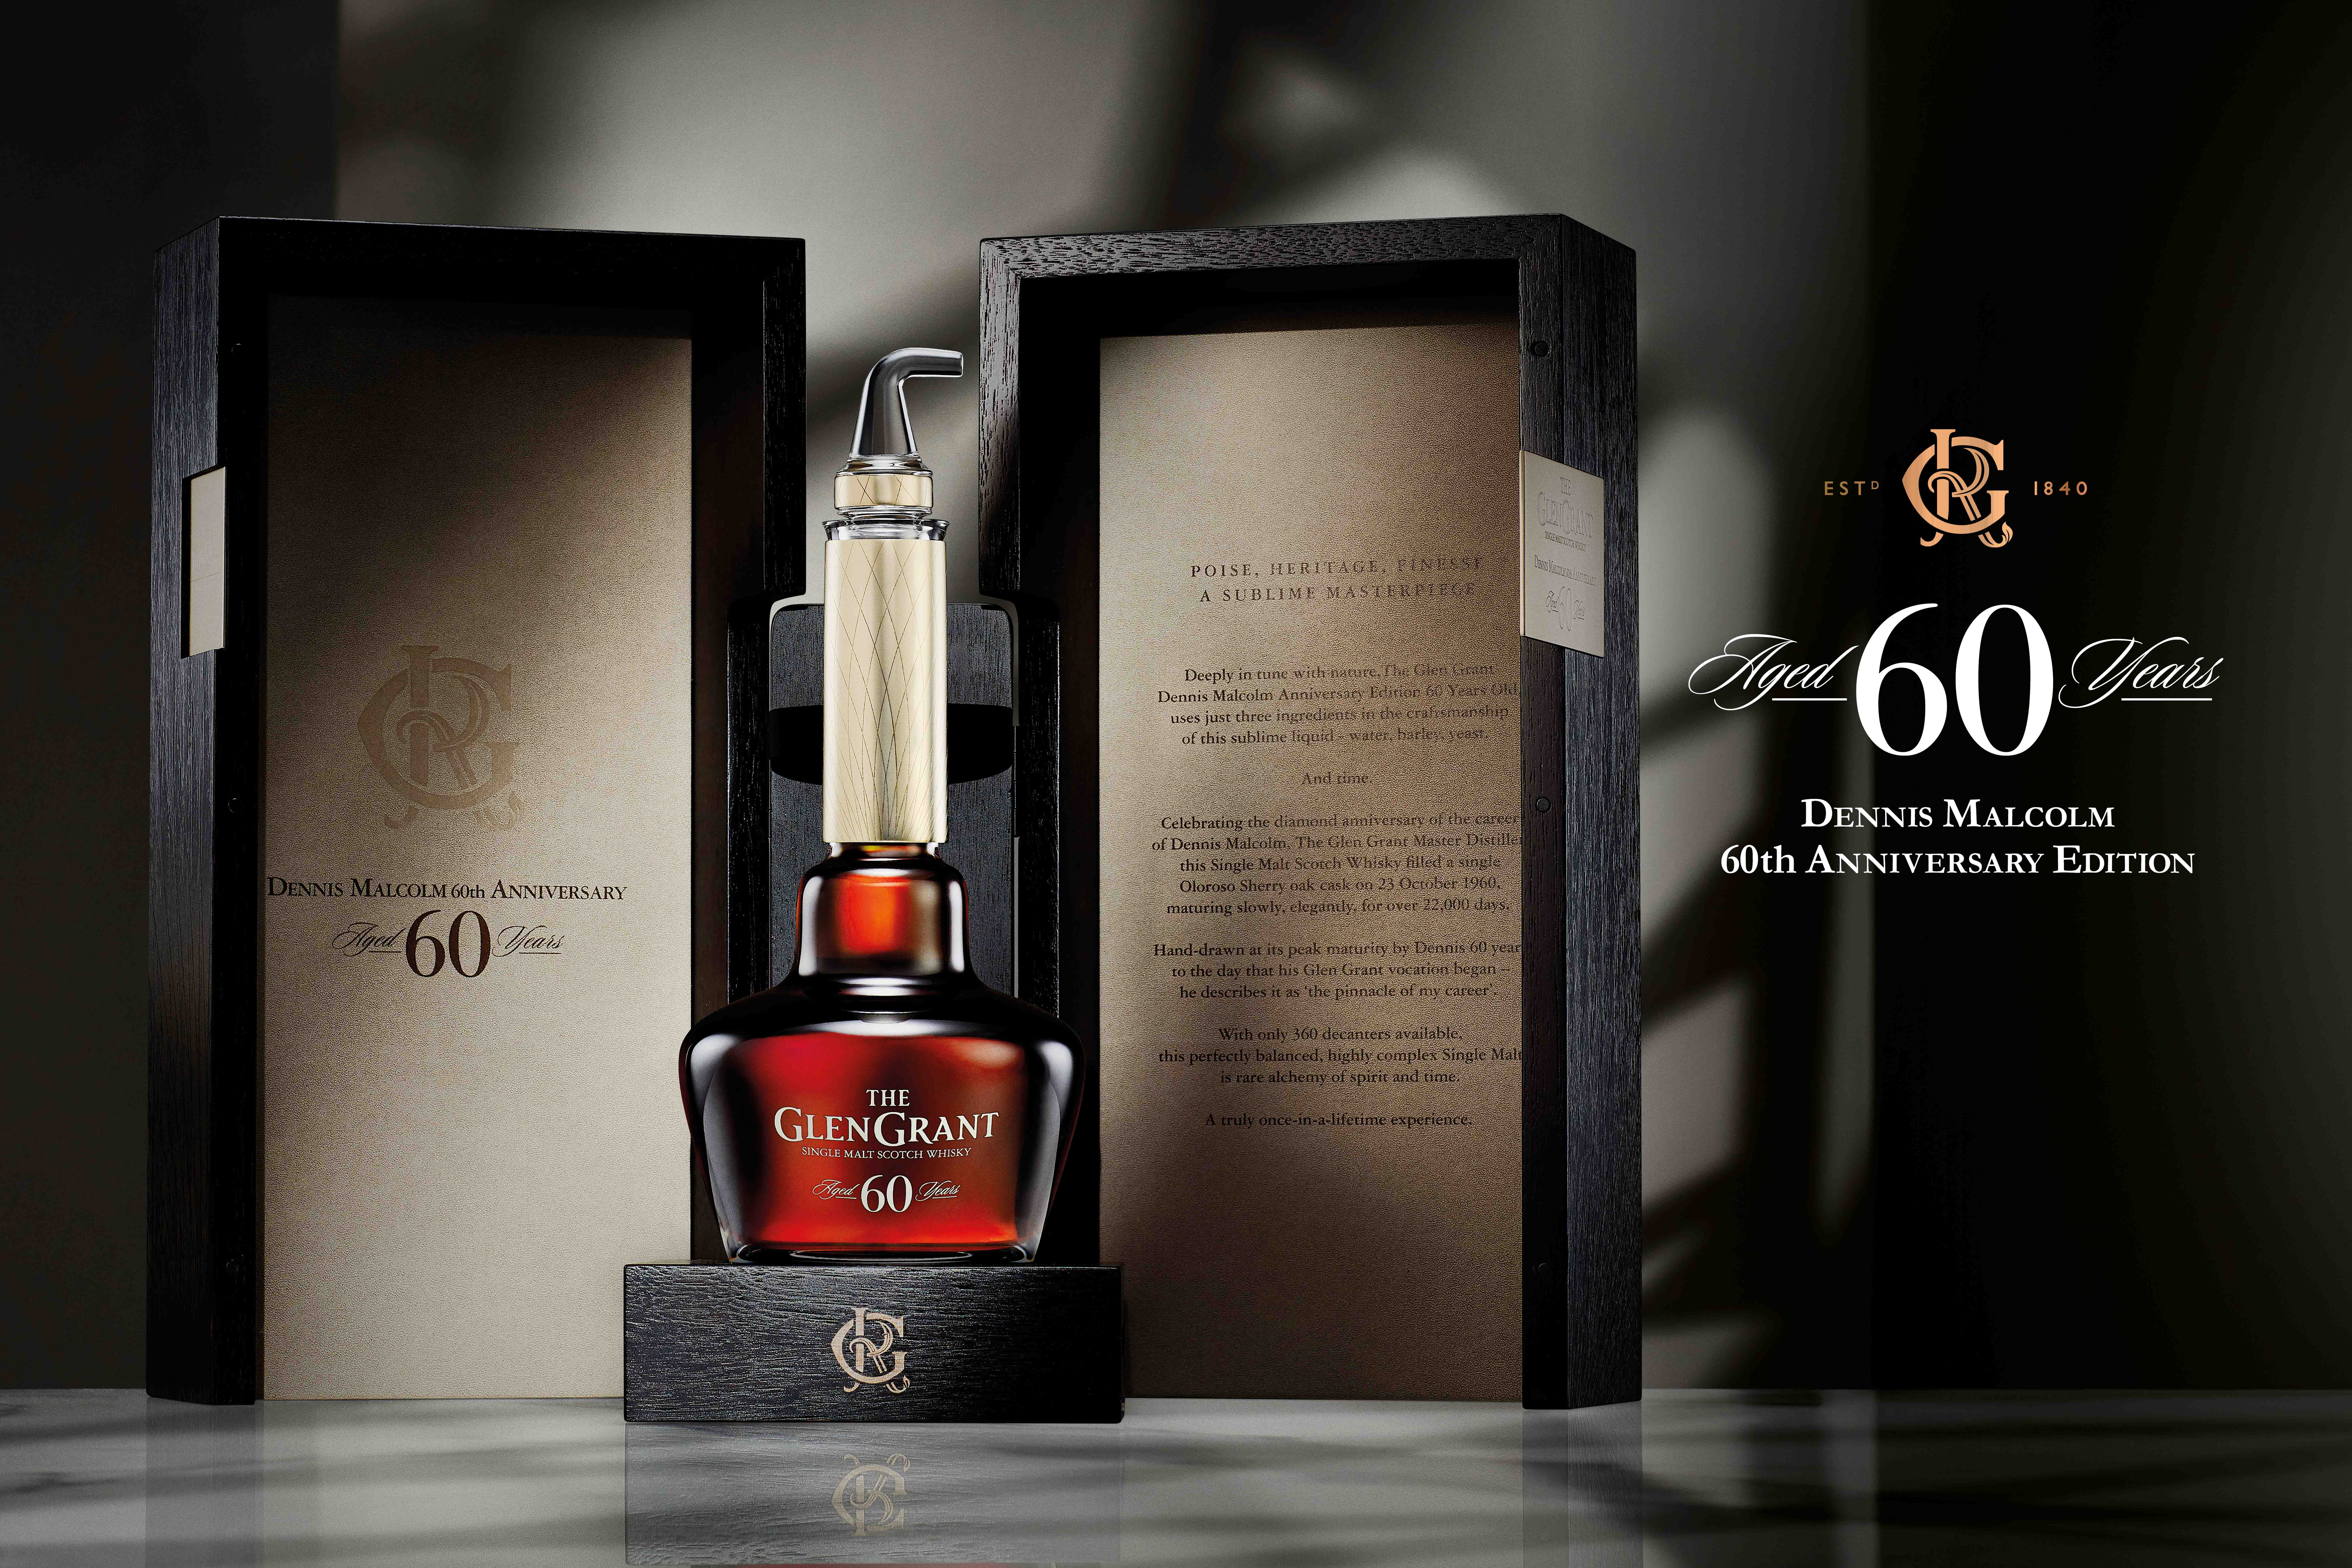 The Glen Grant® announces the release of the Dennis Malcolm 60th Anniversary Edition Aged 60 Years